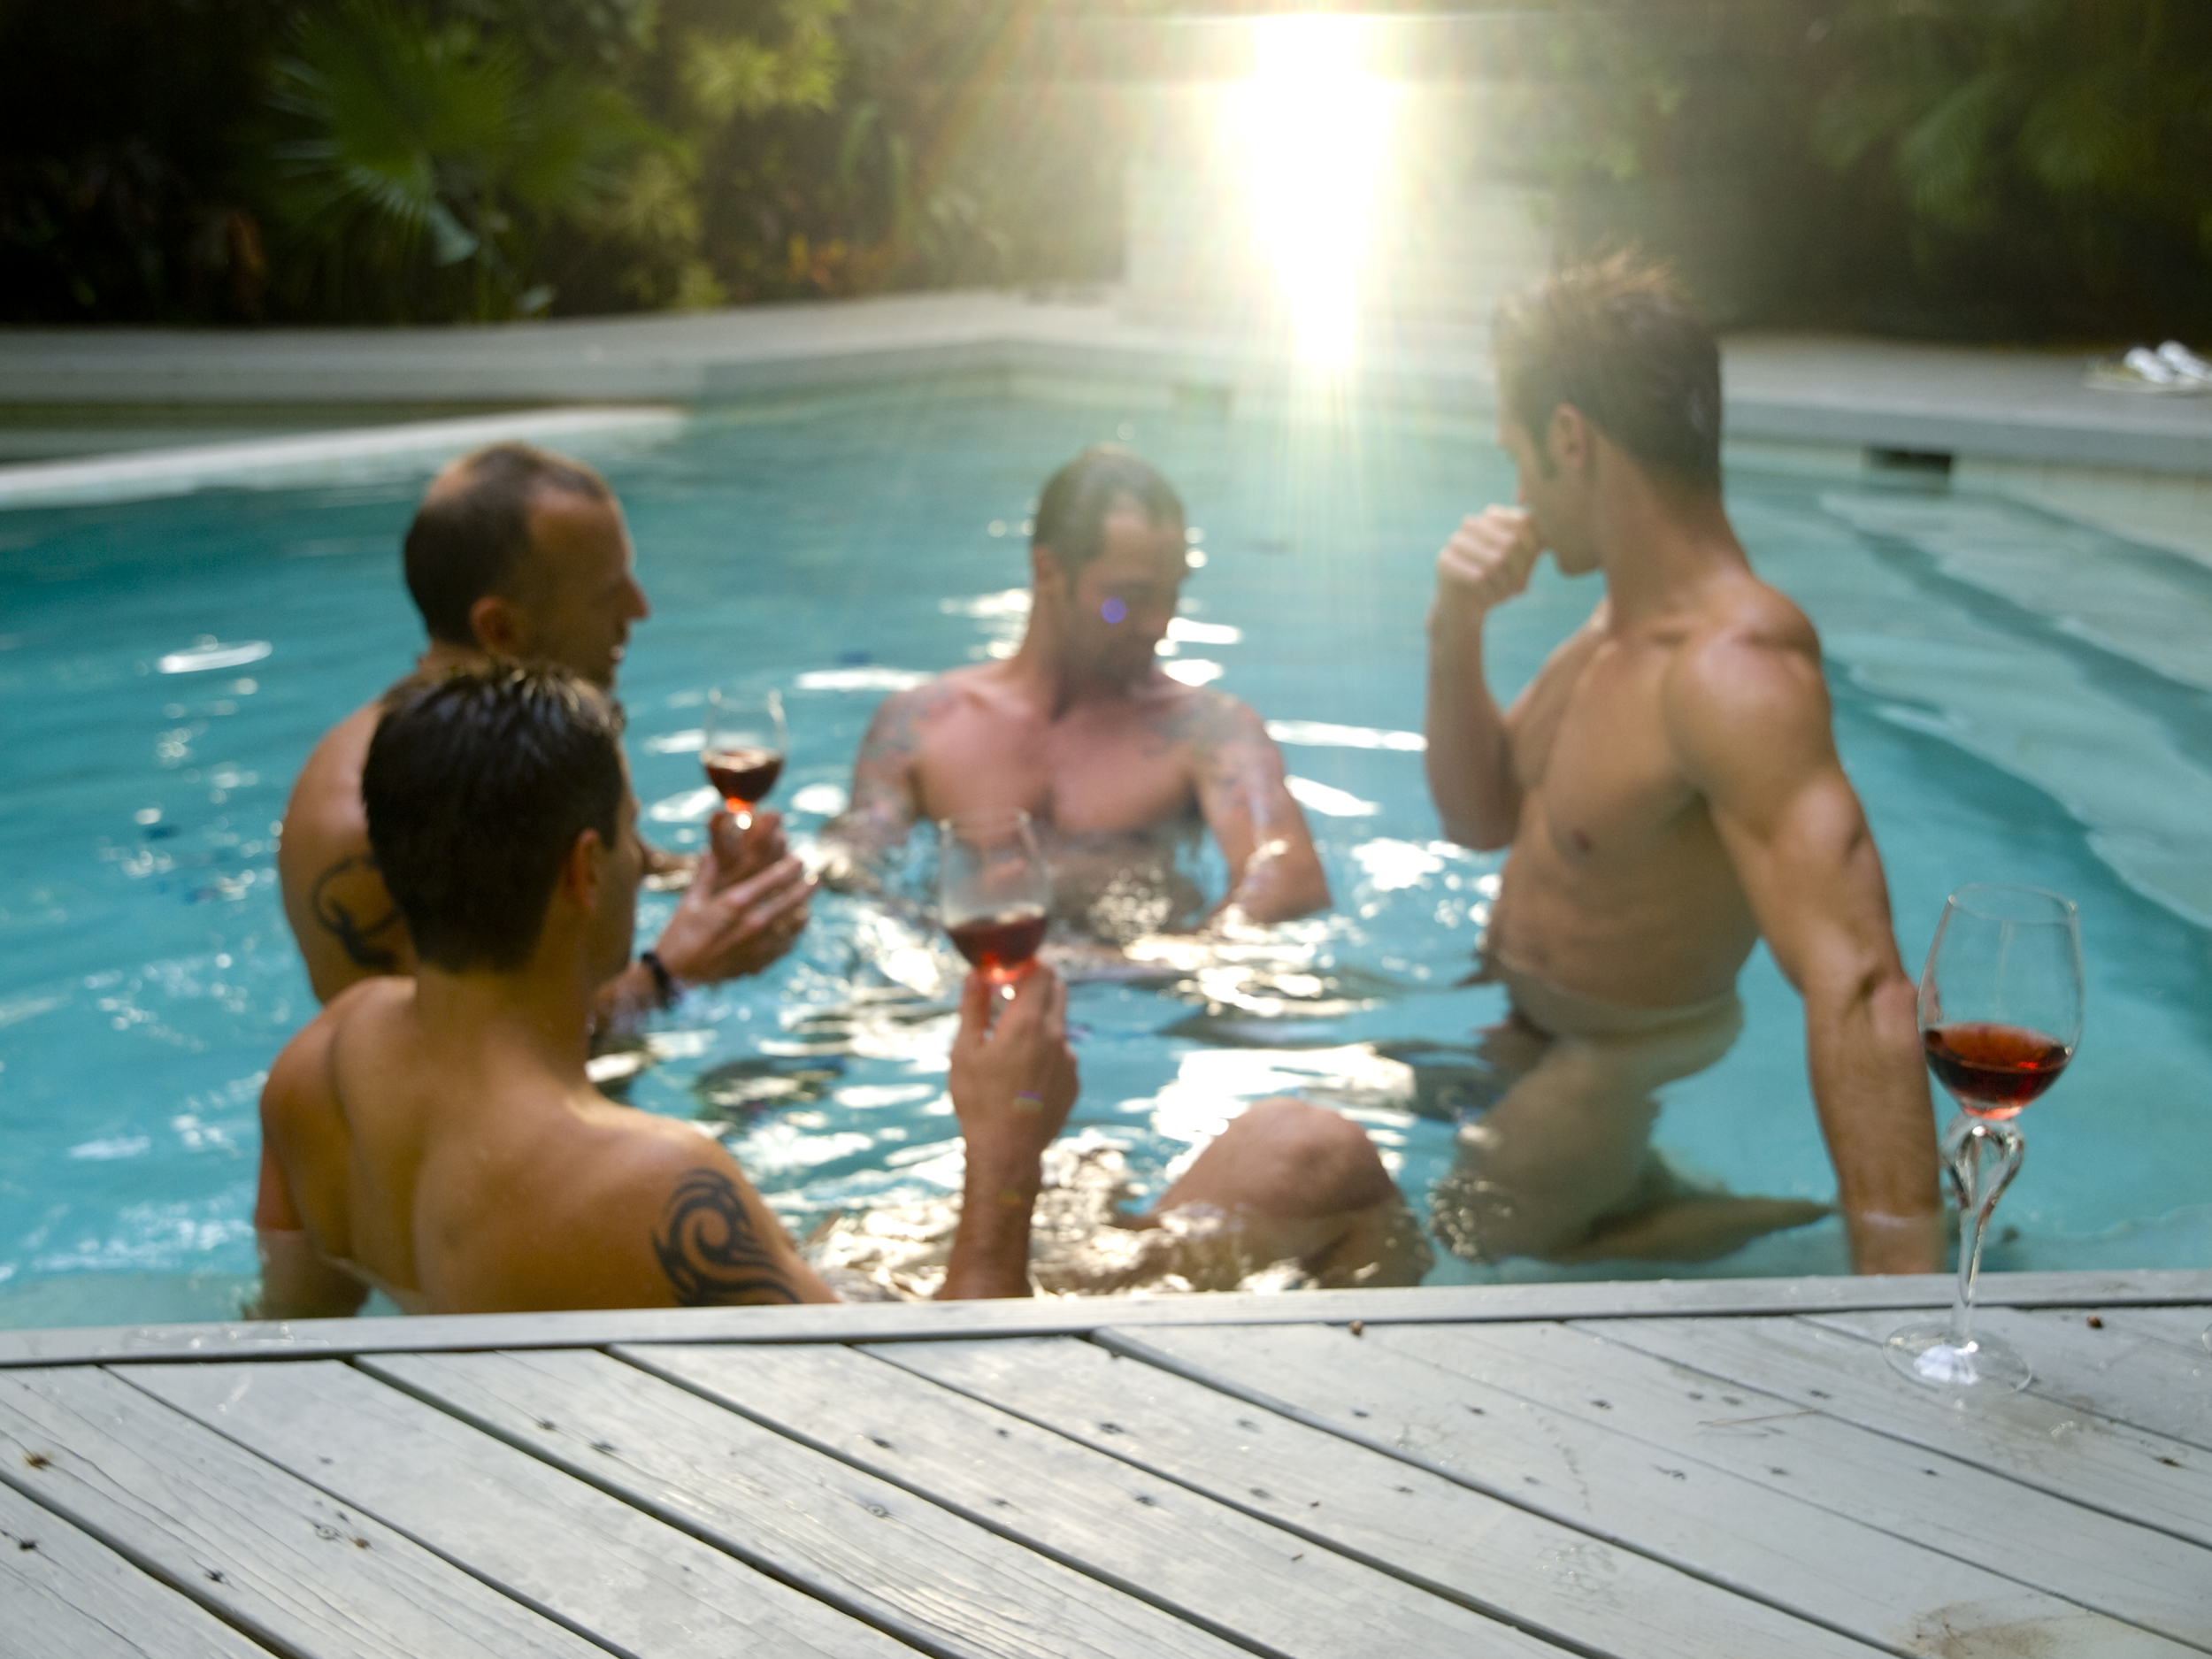 guys in a pool